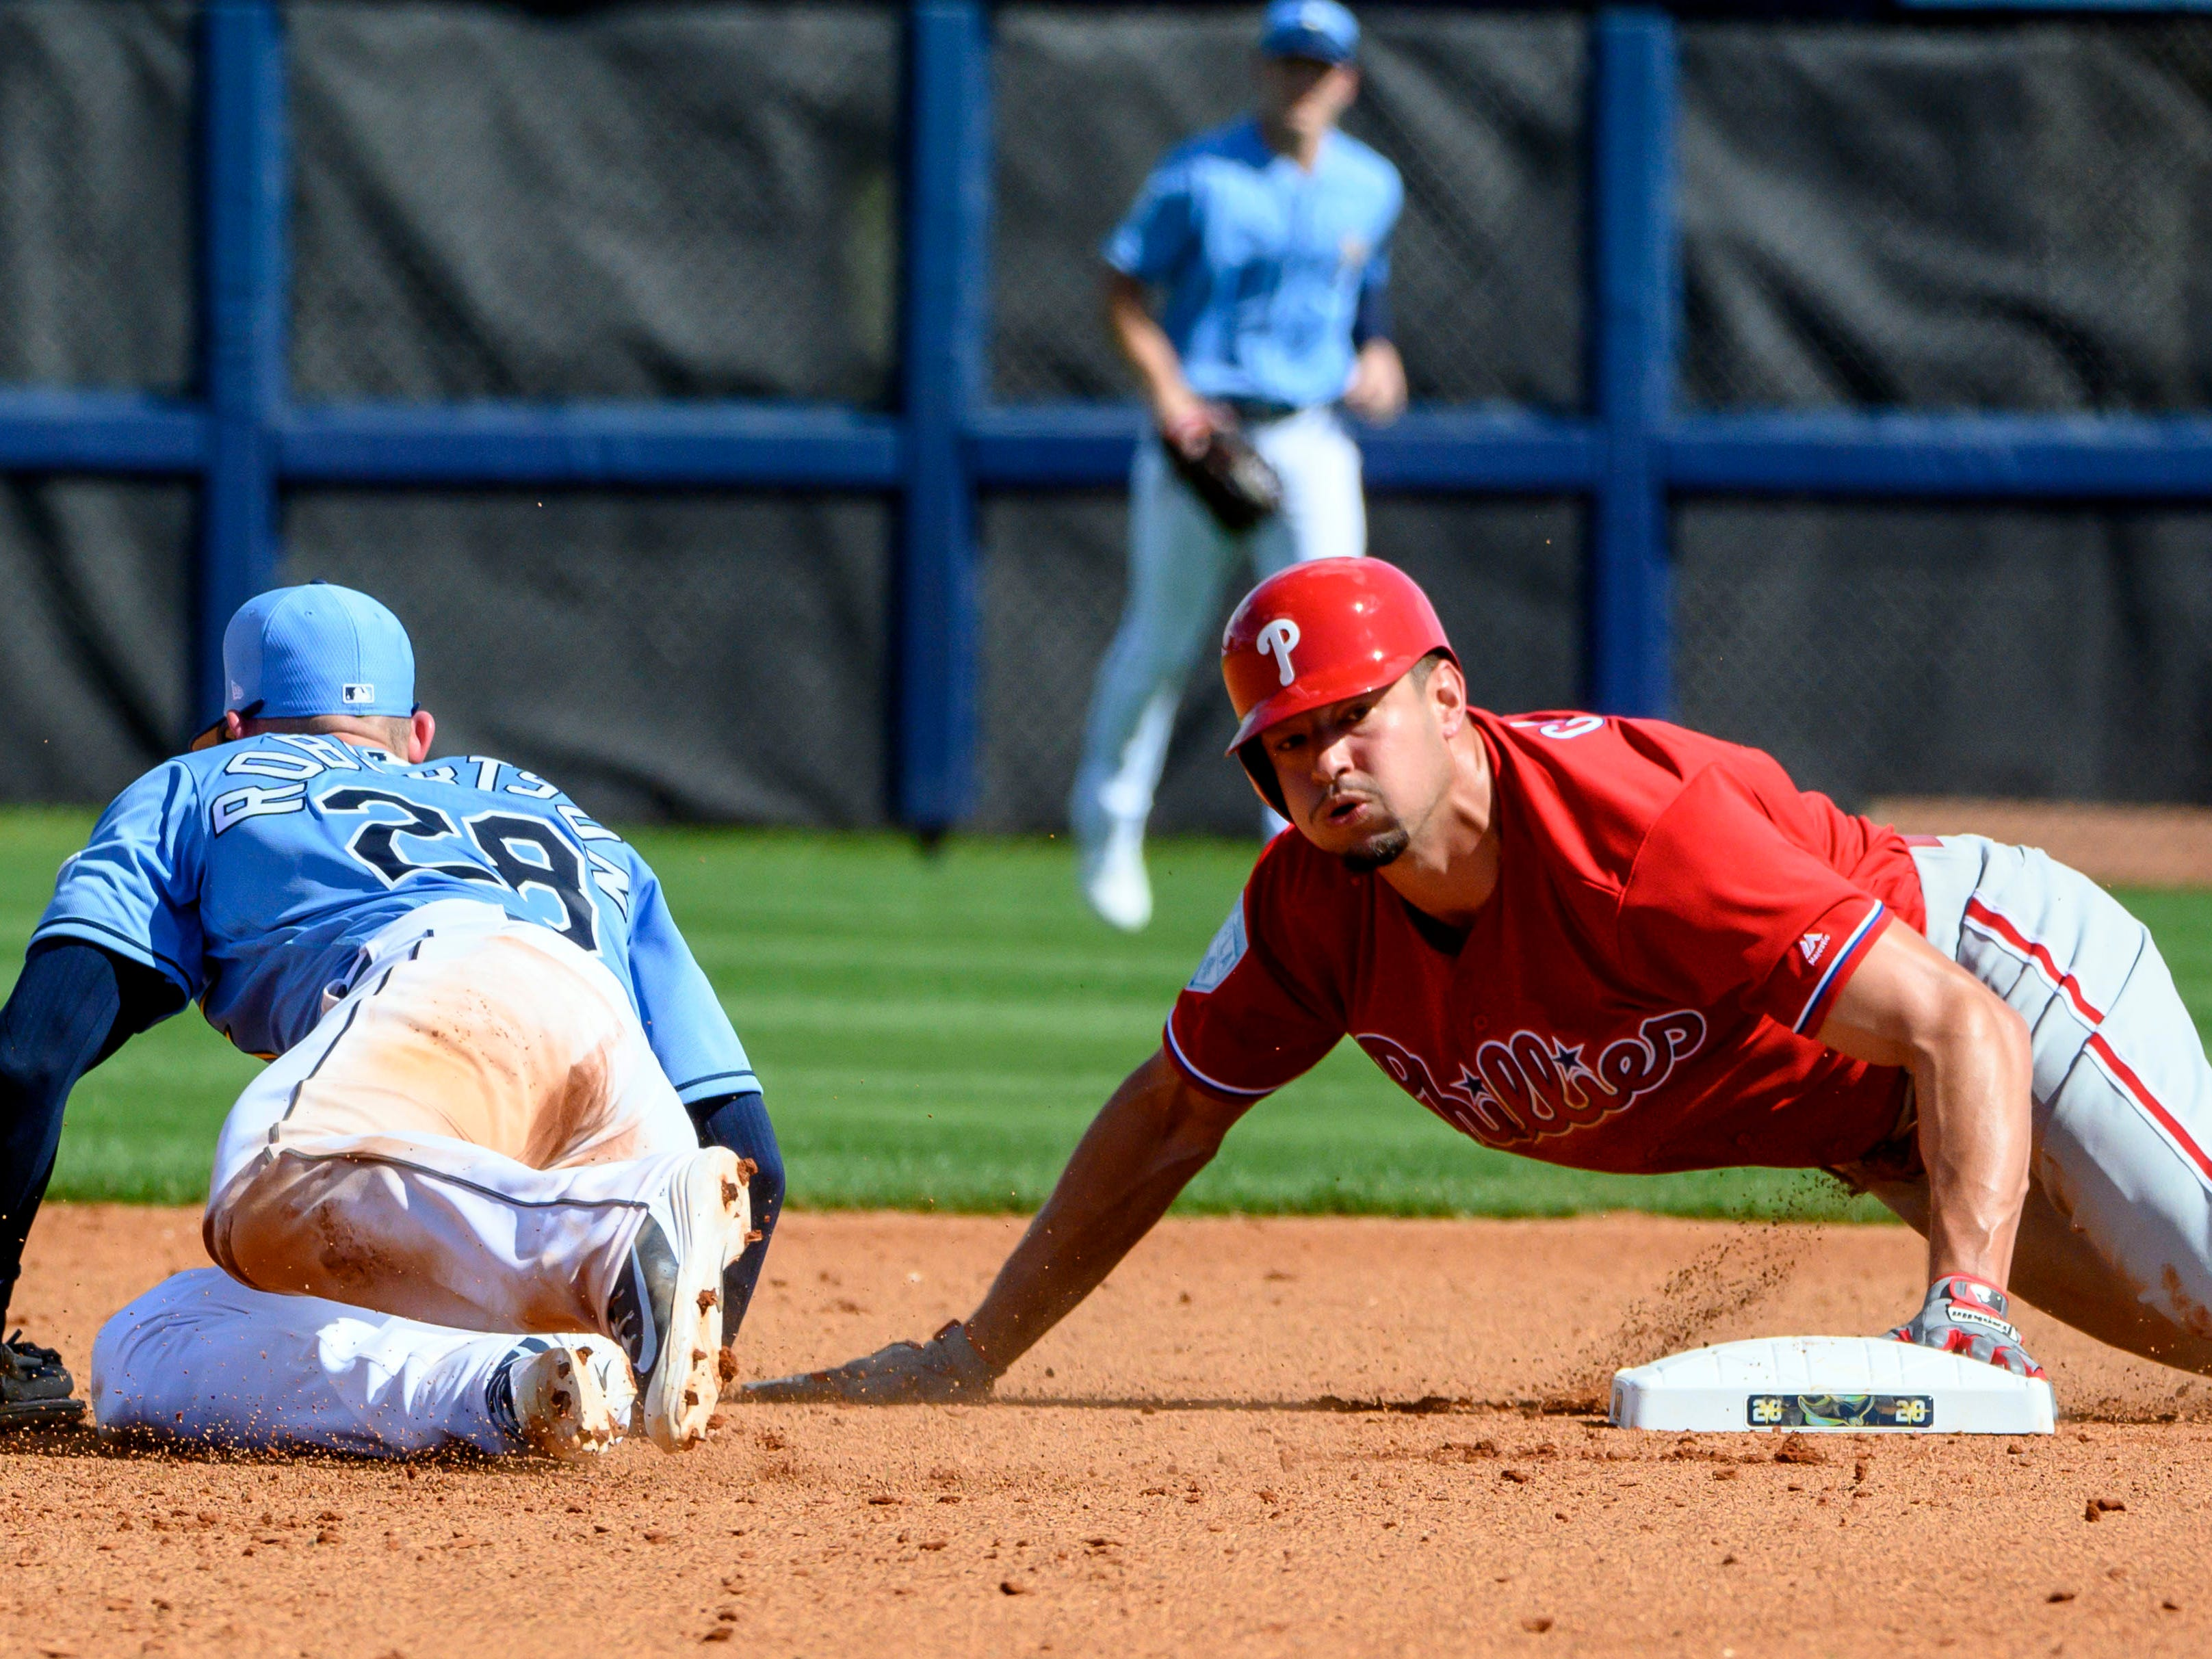 Feb. 22: Philadelphia Phillies right fielder Dylan Cozens steals second base in front of Tampa Bay Rays third baseman Daniel Robertson during the fourth inning at Charlotte Sports Park.